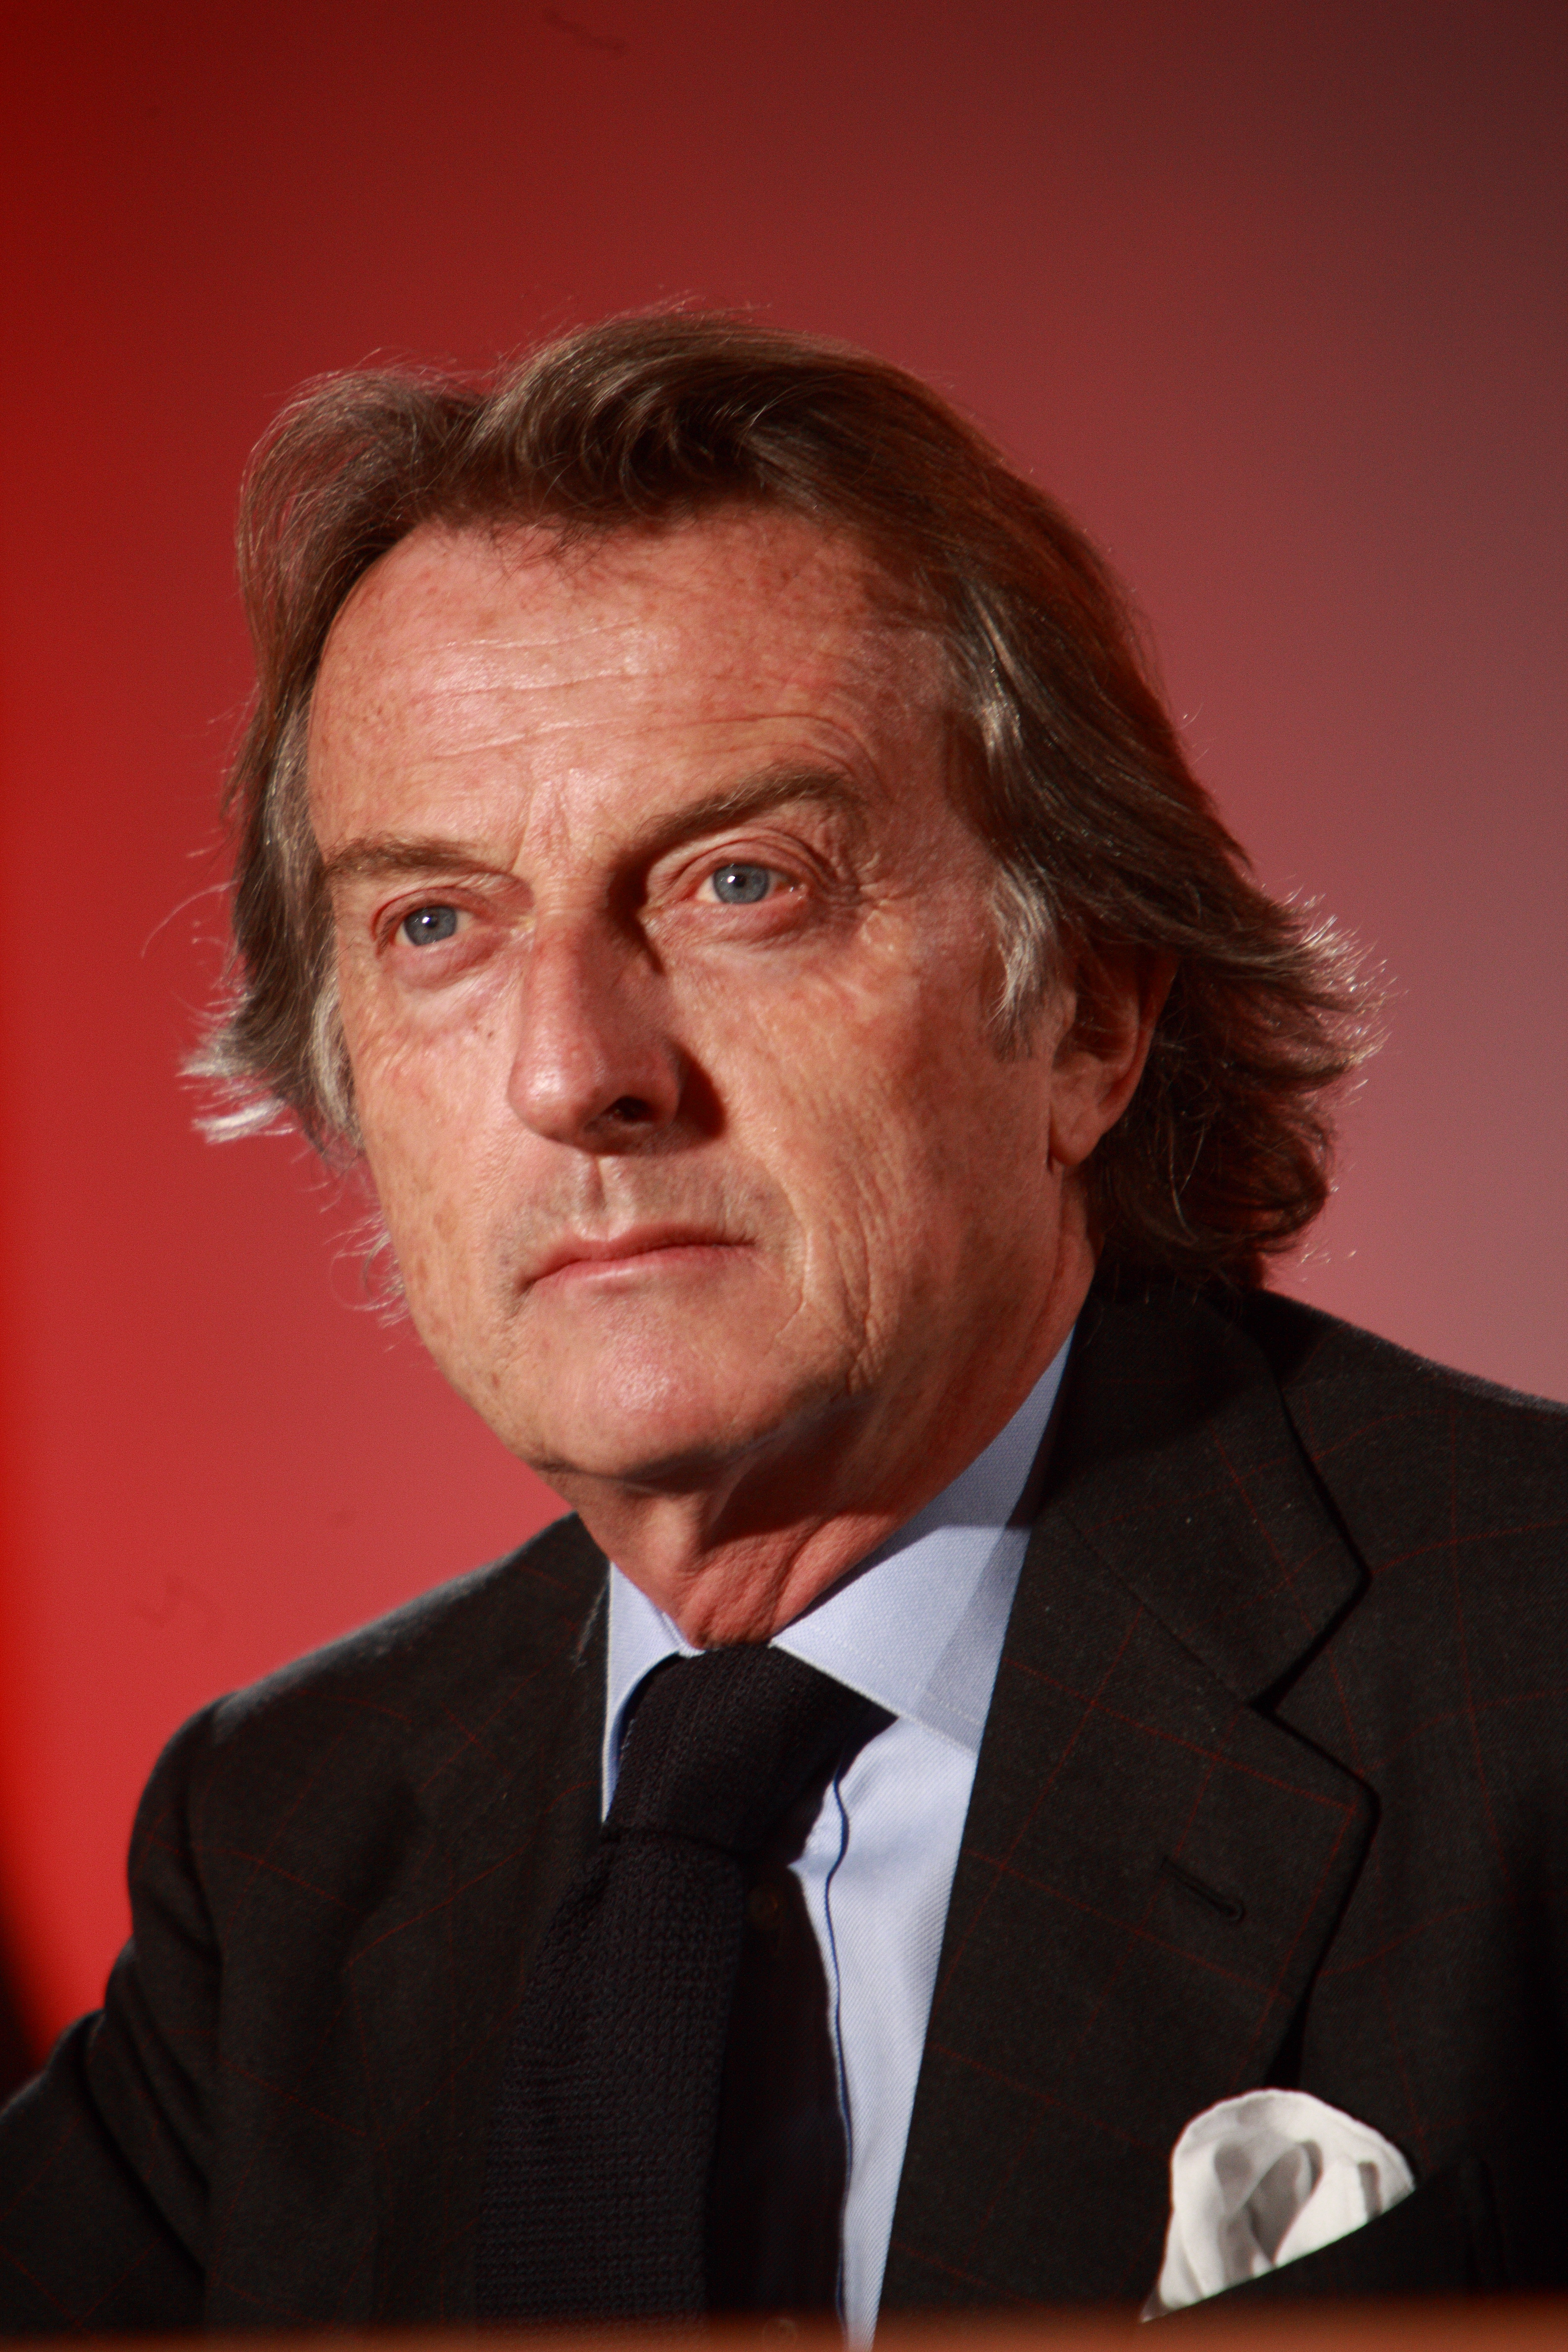 The 71-year old son of father Massimo Cordero dei Marchesi di Montezemolo and mother Clotilde NeriClotilde Neri Luca di Montezemolo in 2018 photo. Luca di Montezemolo earned a  million dollar salary - leaving the net worth at 400 million in 2018